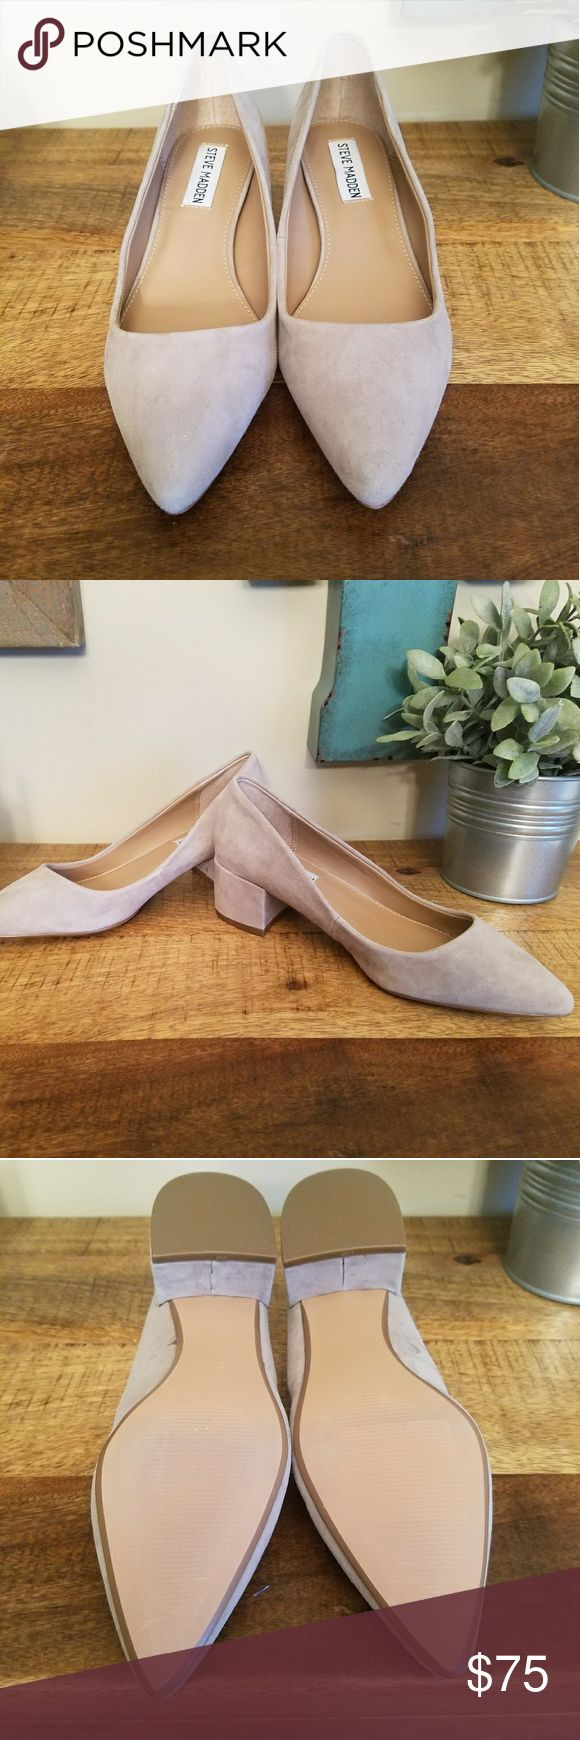 NEW Steve Madden Taupe Sude heels Never been worn Steve Madden block heel with a pointy toe. The perfect heel for work or a special occasion! These are sold out and no longer available in stores.   Open to offers. Steve Madden Shoes Heels